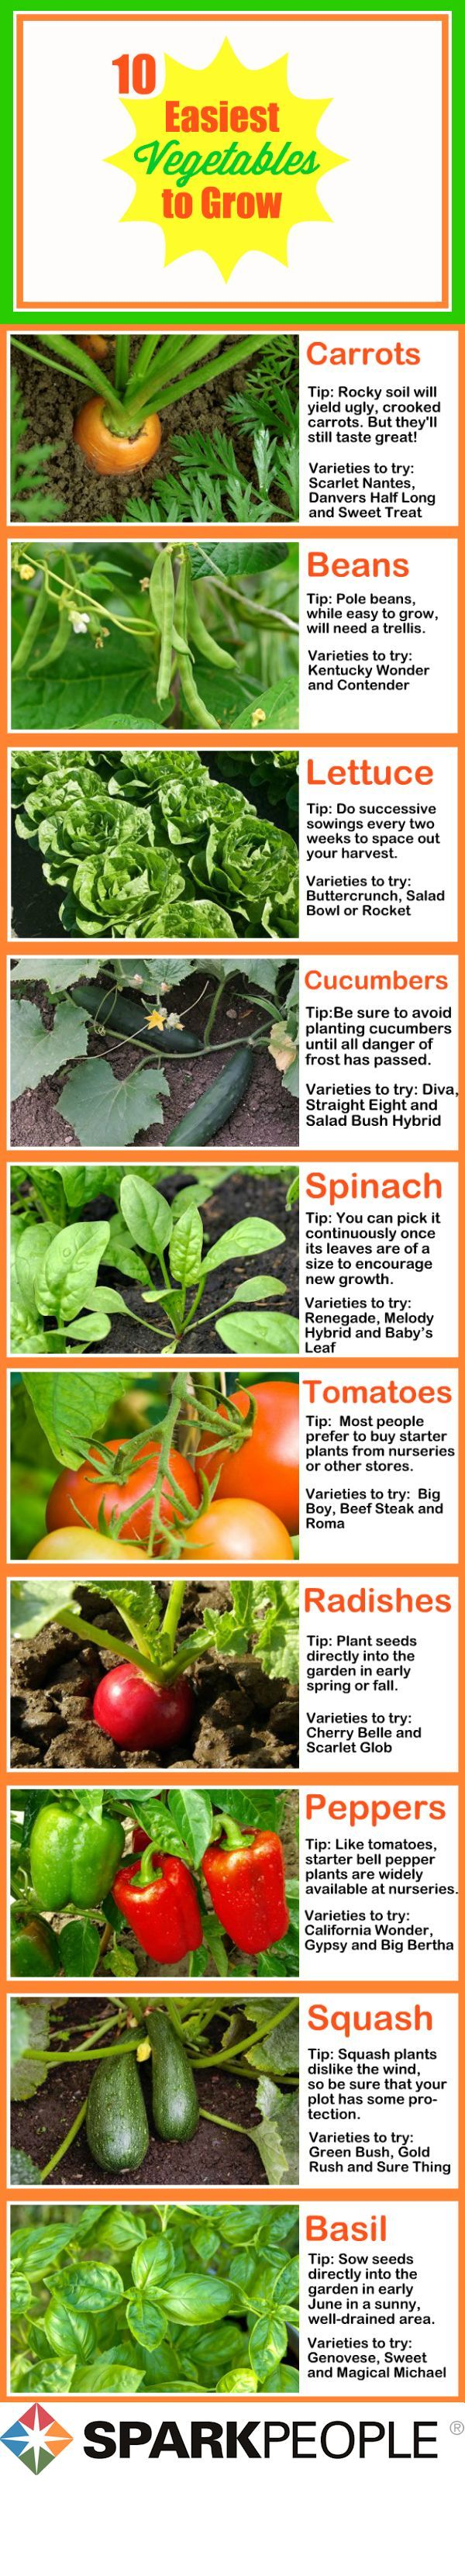 The 10 easiest vegetables to grow